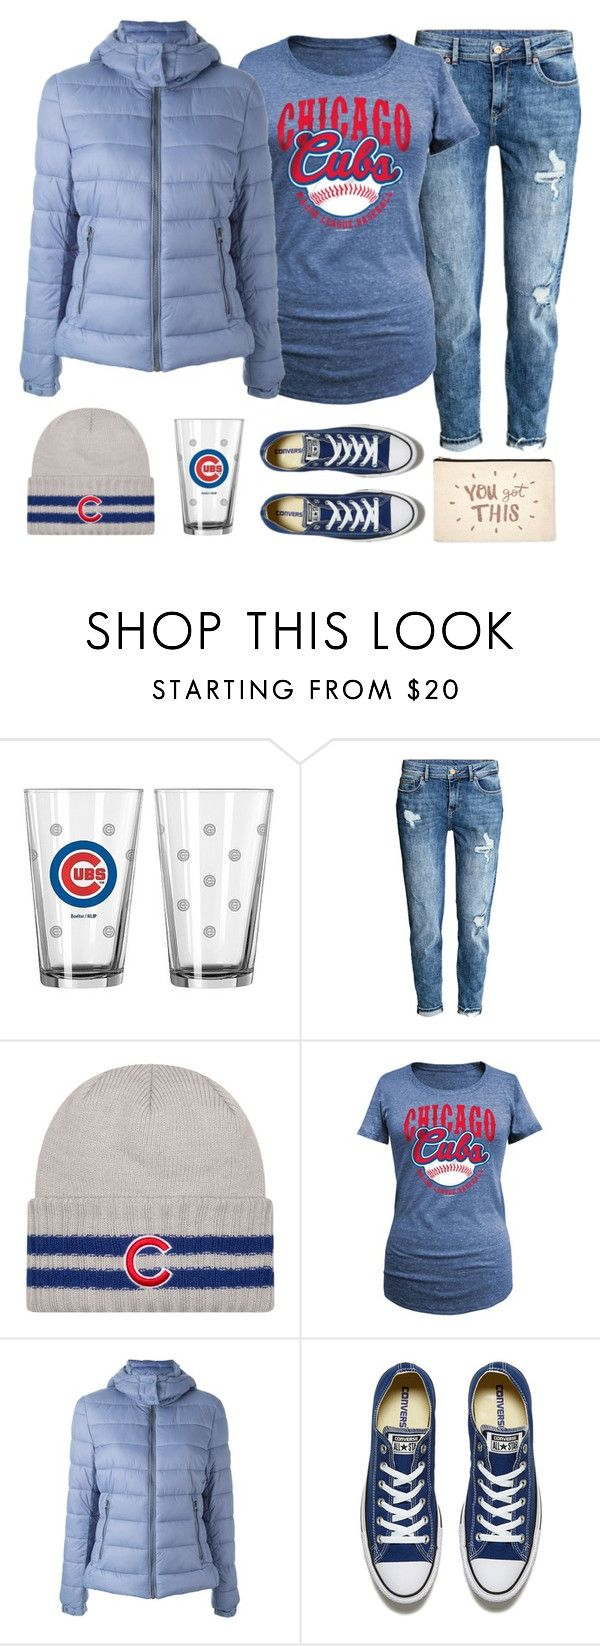 """""""You got this! Go Cubs!!!"""" by musicfriend1 ❤ liked on Polyvore featuring H&M, 5th & Ocean, Save the Duck, Converse and ALPHABET BAGS"""